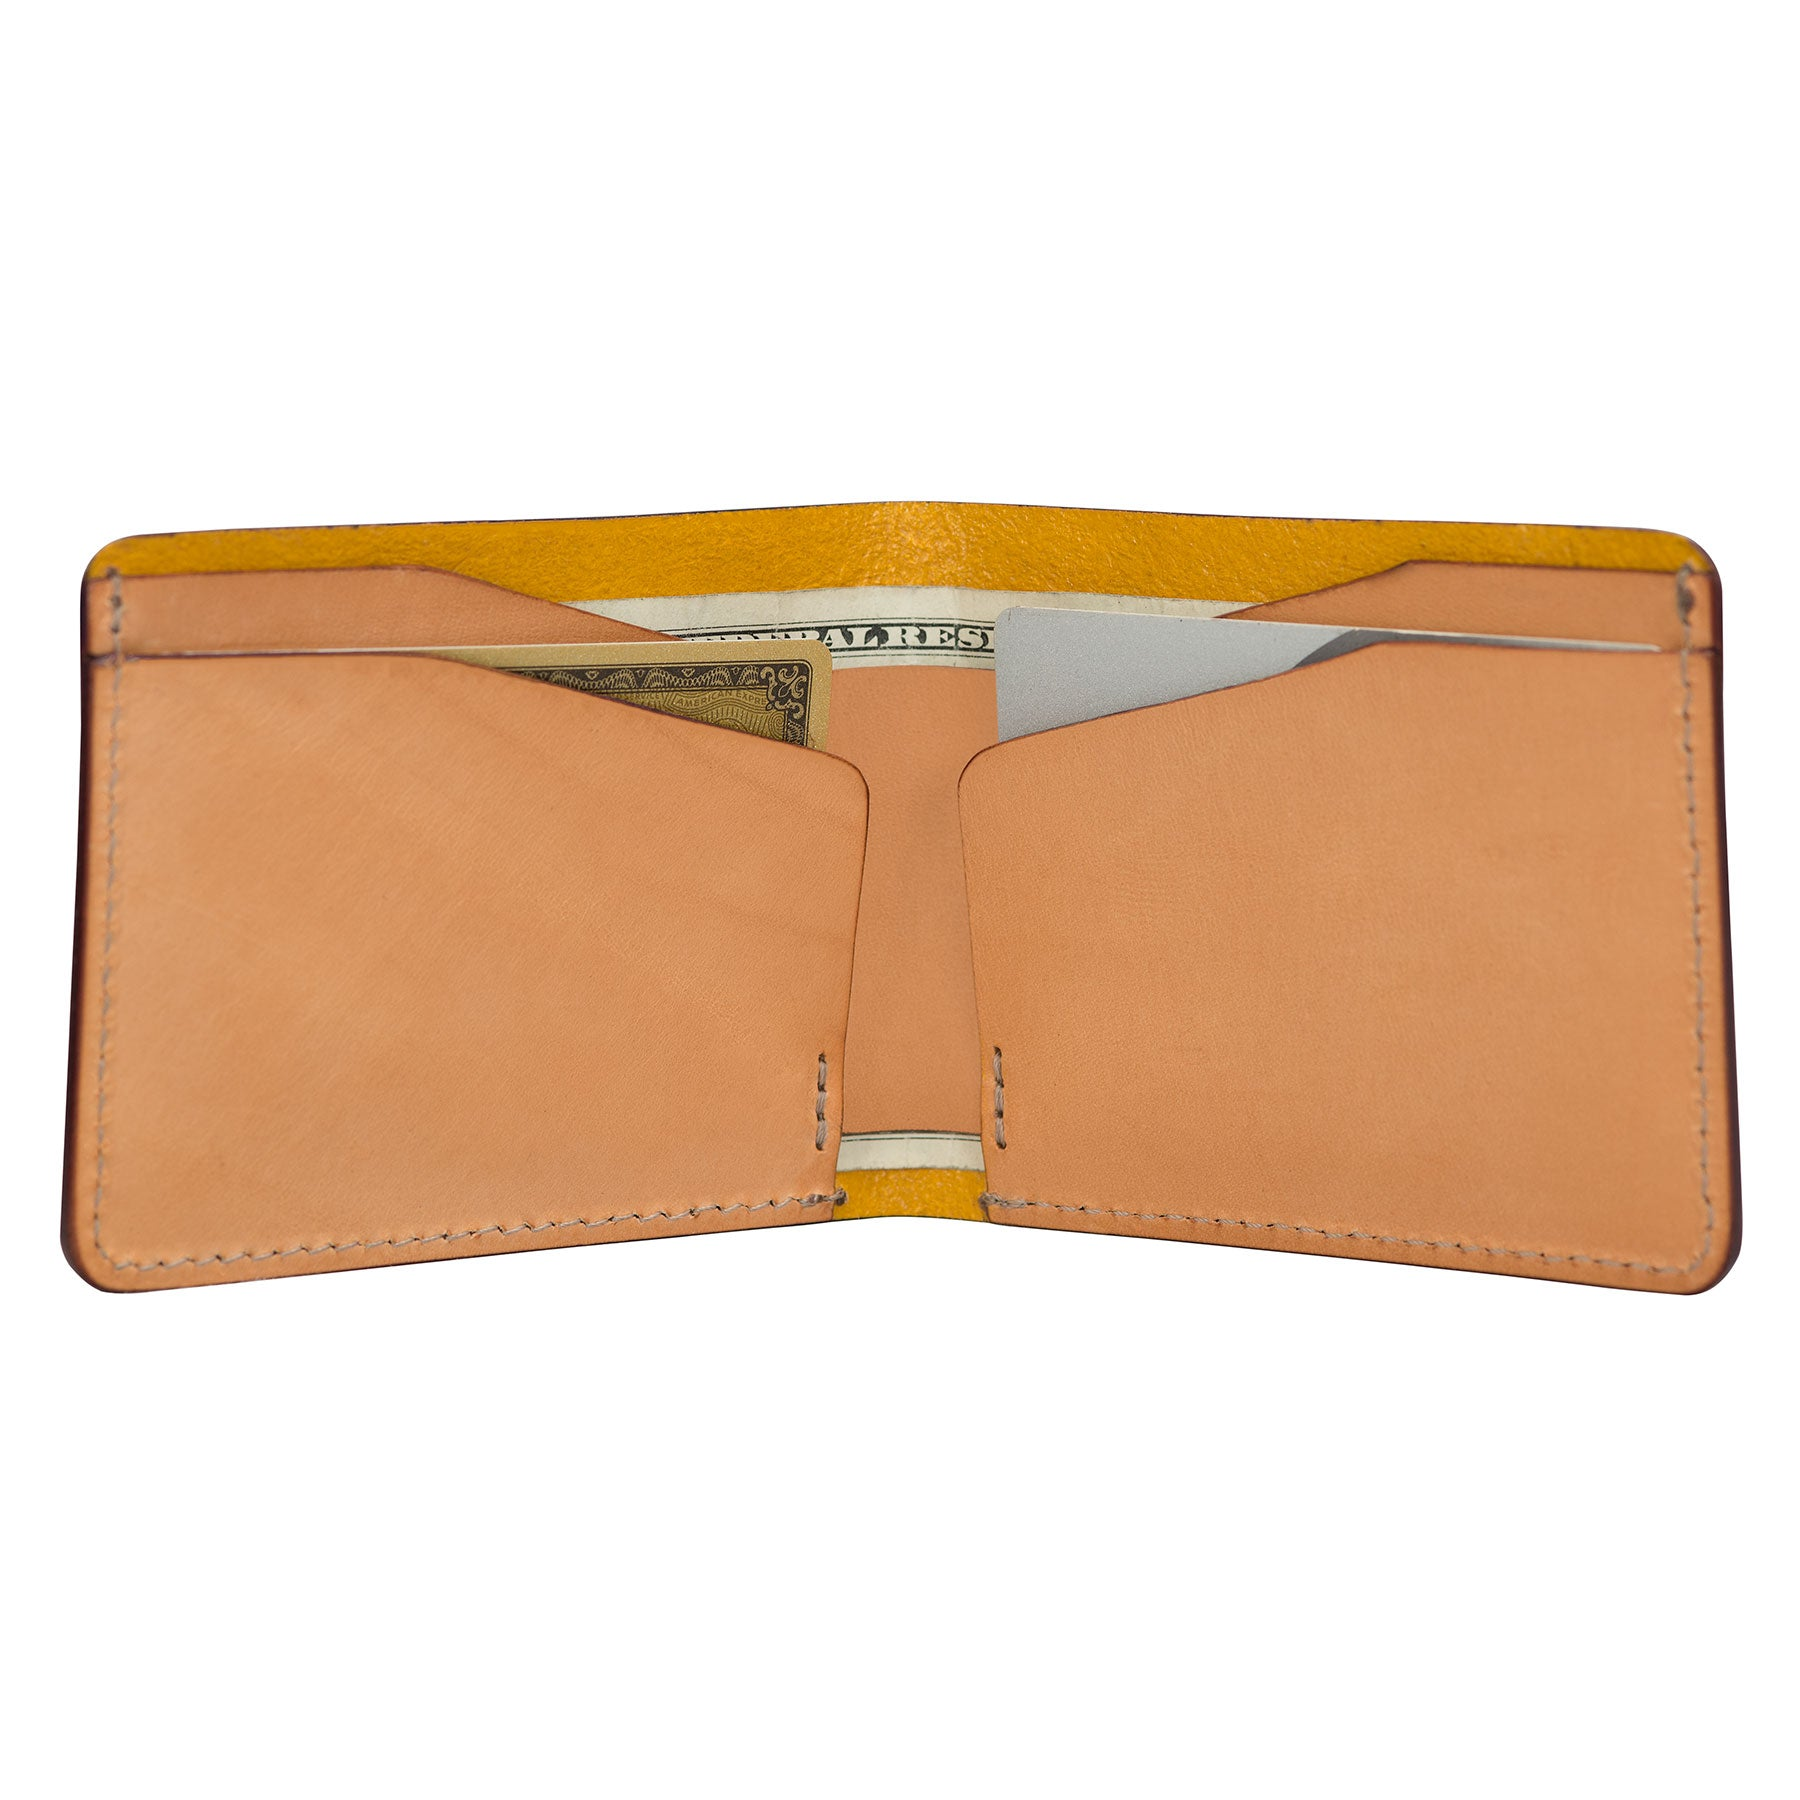 W Wallet: Hand-Burnished Leather